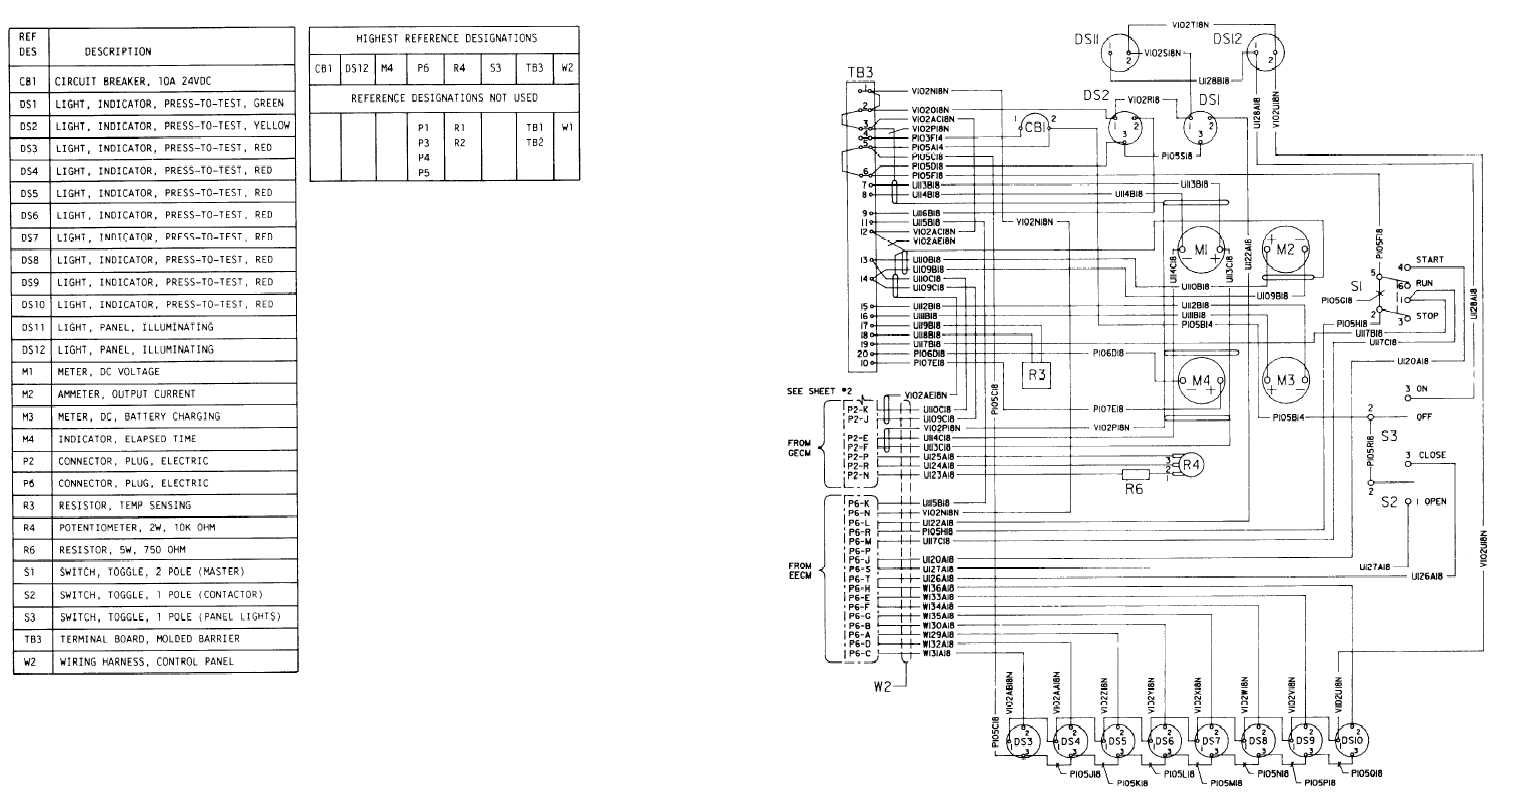 fire alarm control panel wiring diagram for [ 1528 x 808 Pixel ]